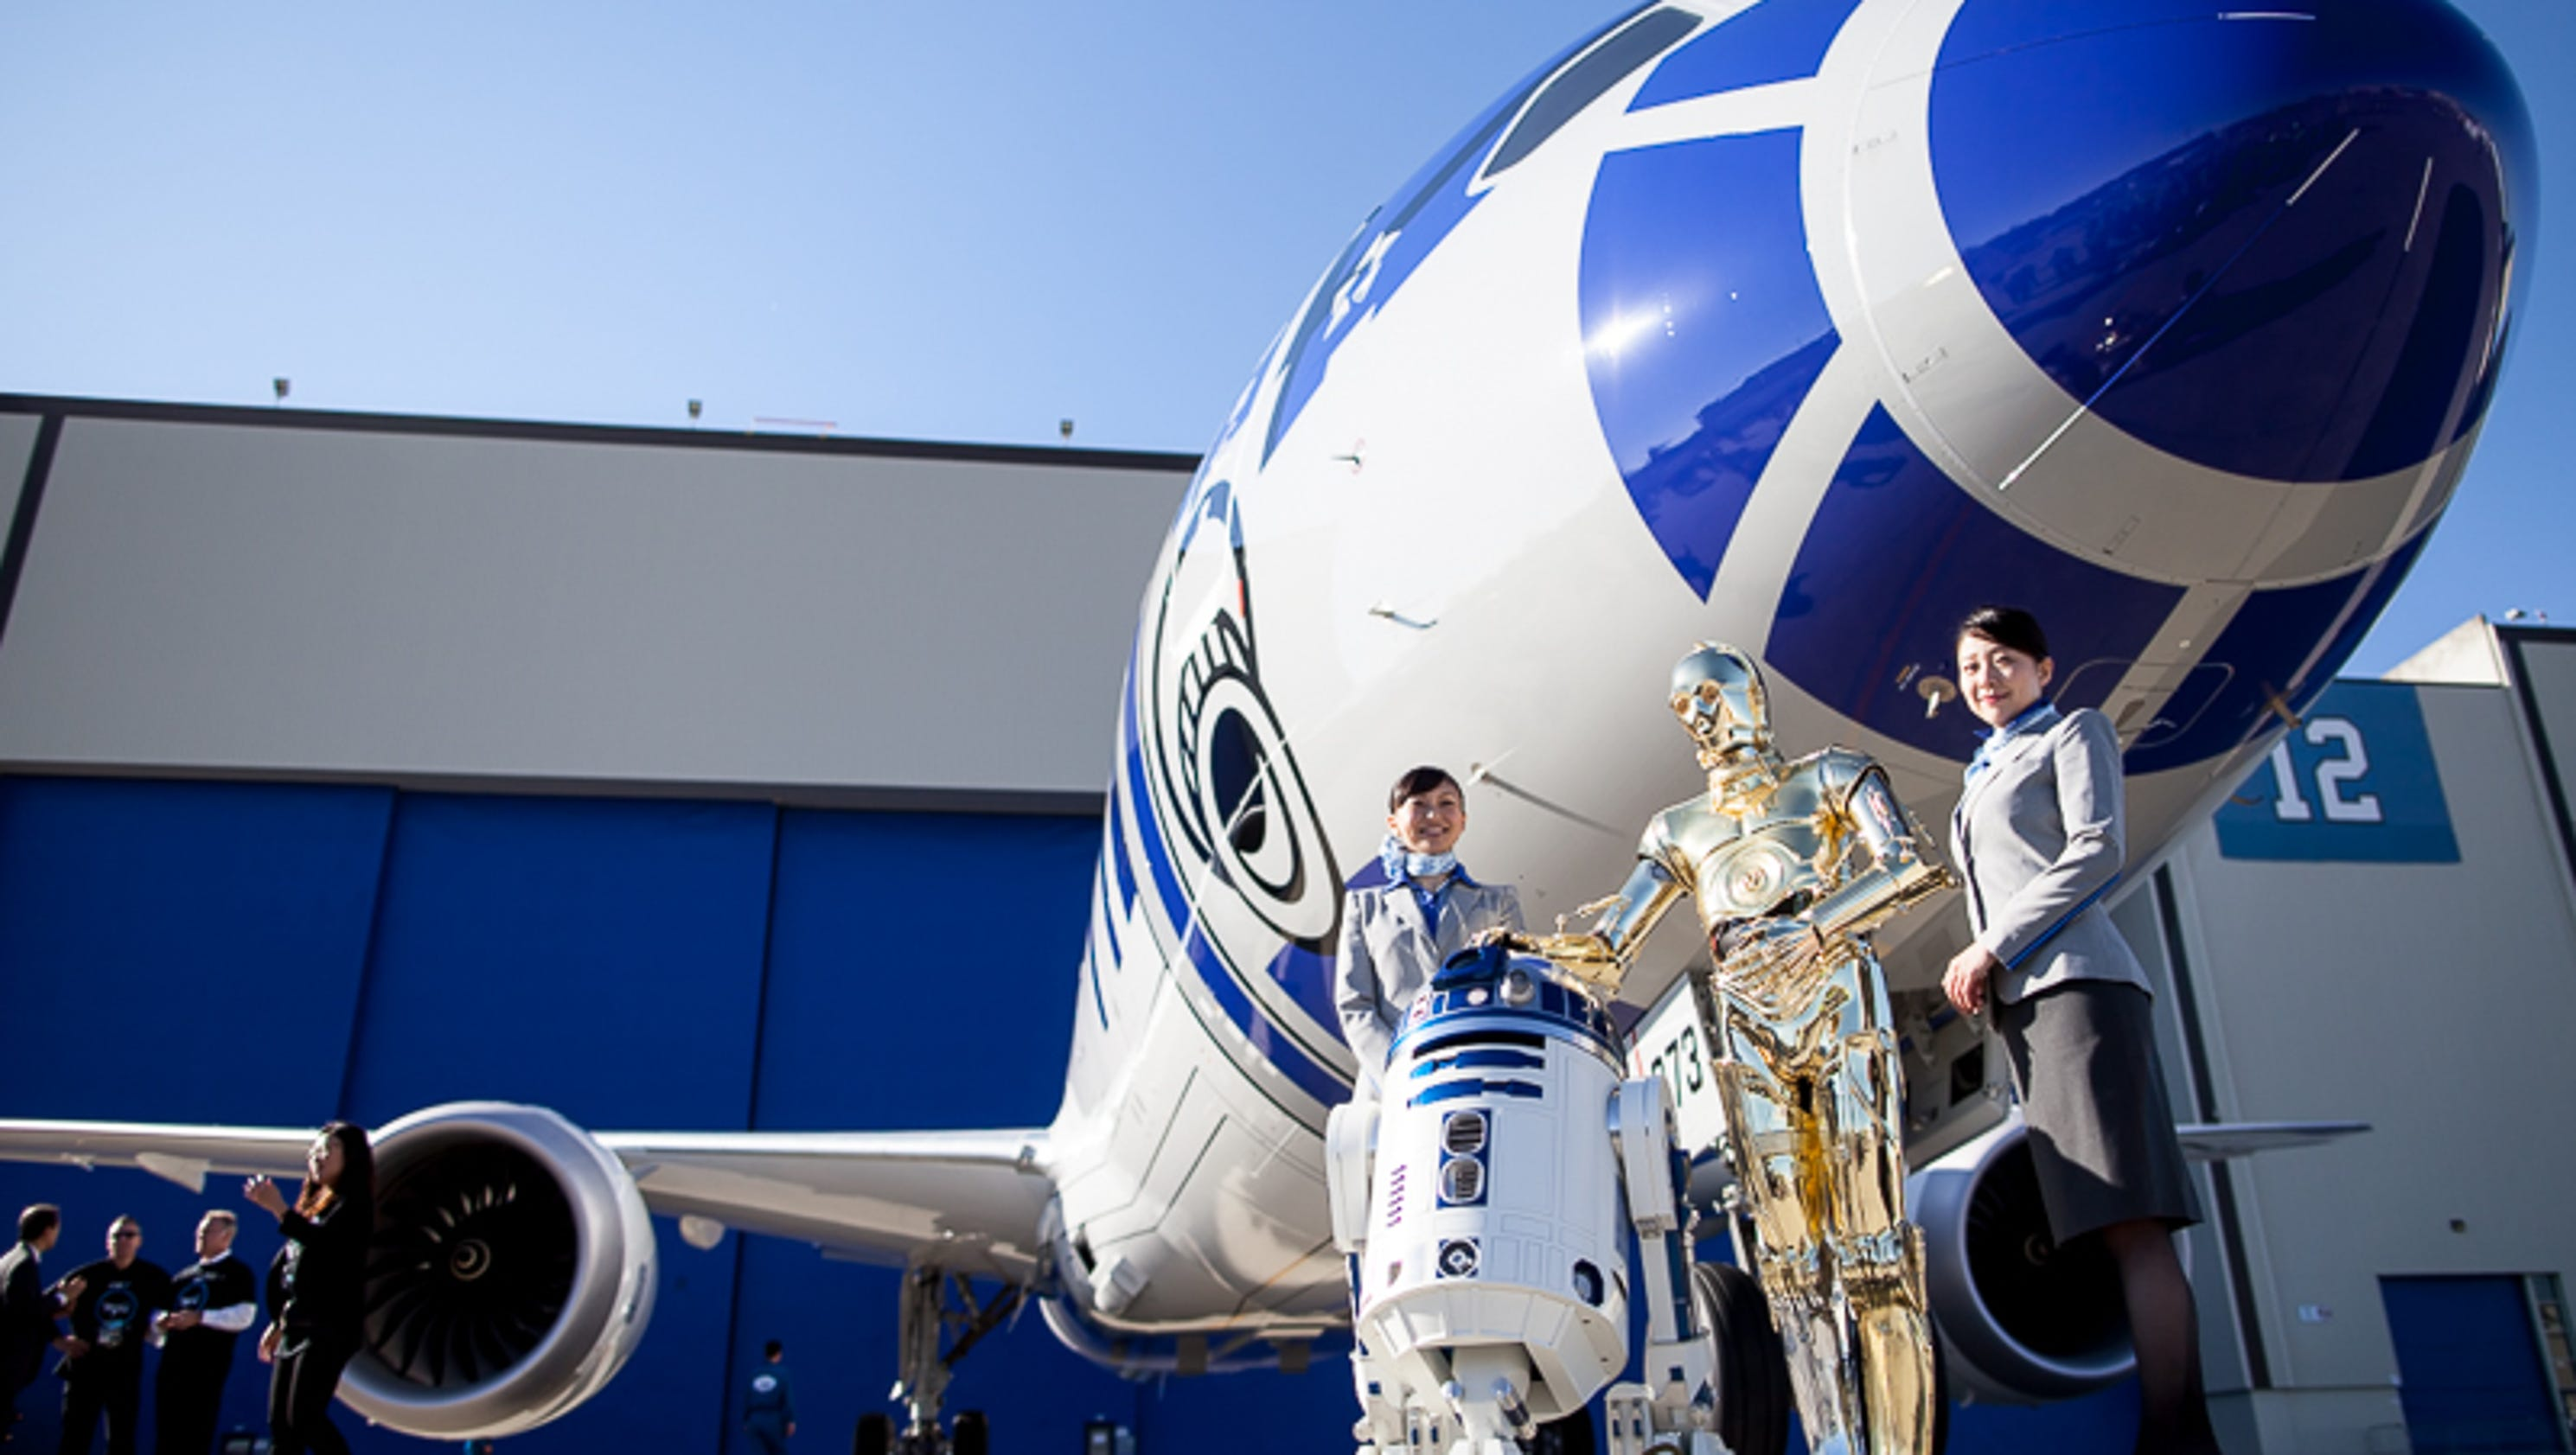 check out the all nippon airways dreamliner painted like r2